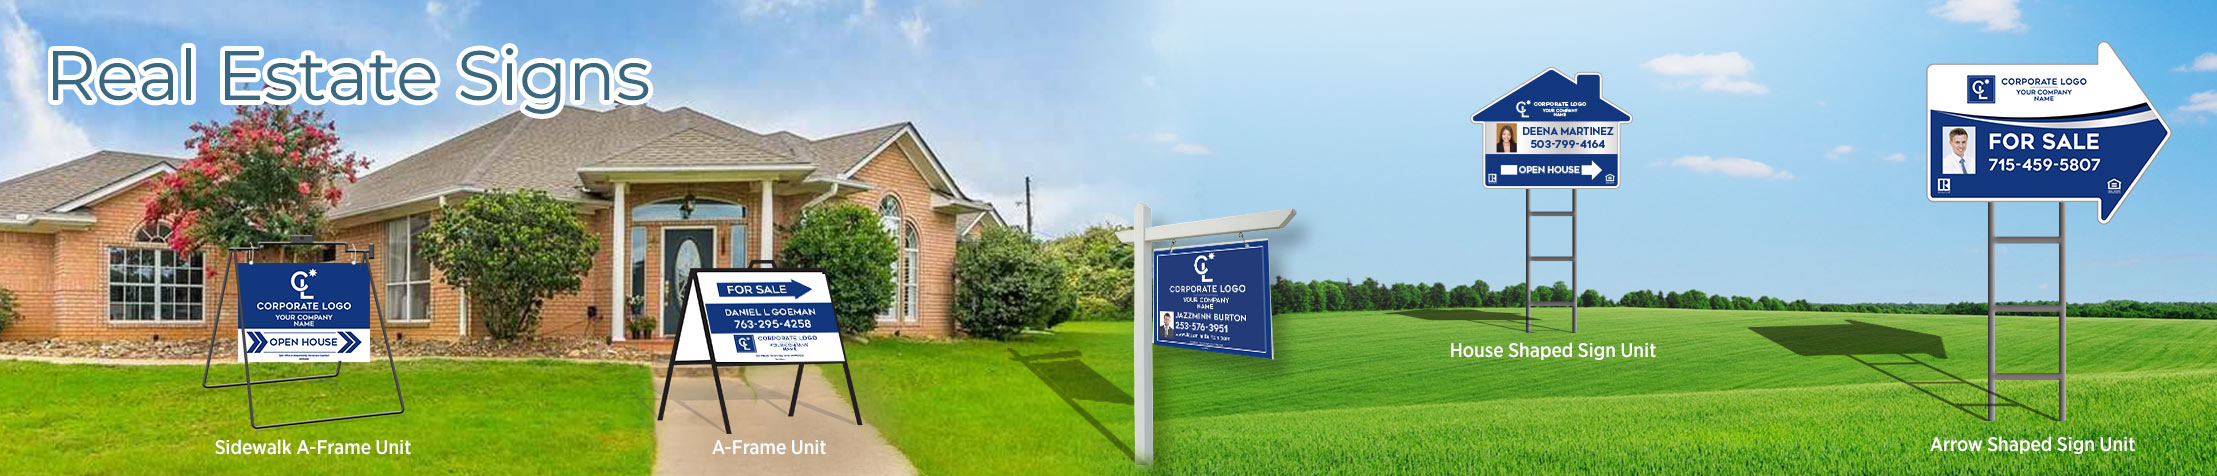 Coldwell Banker Real Estate Signs